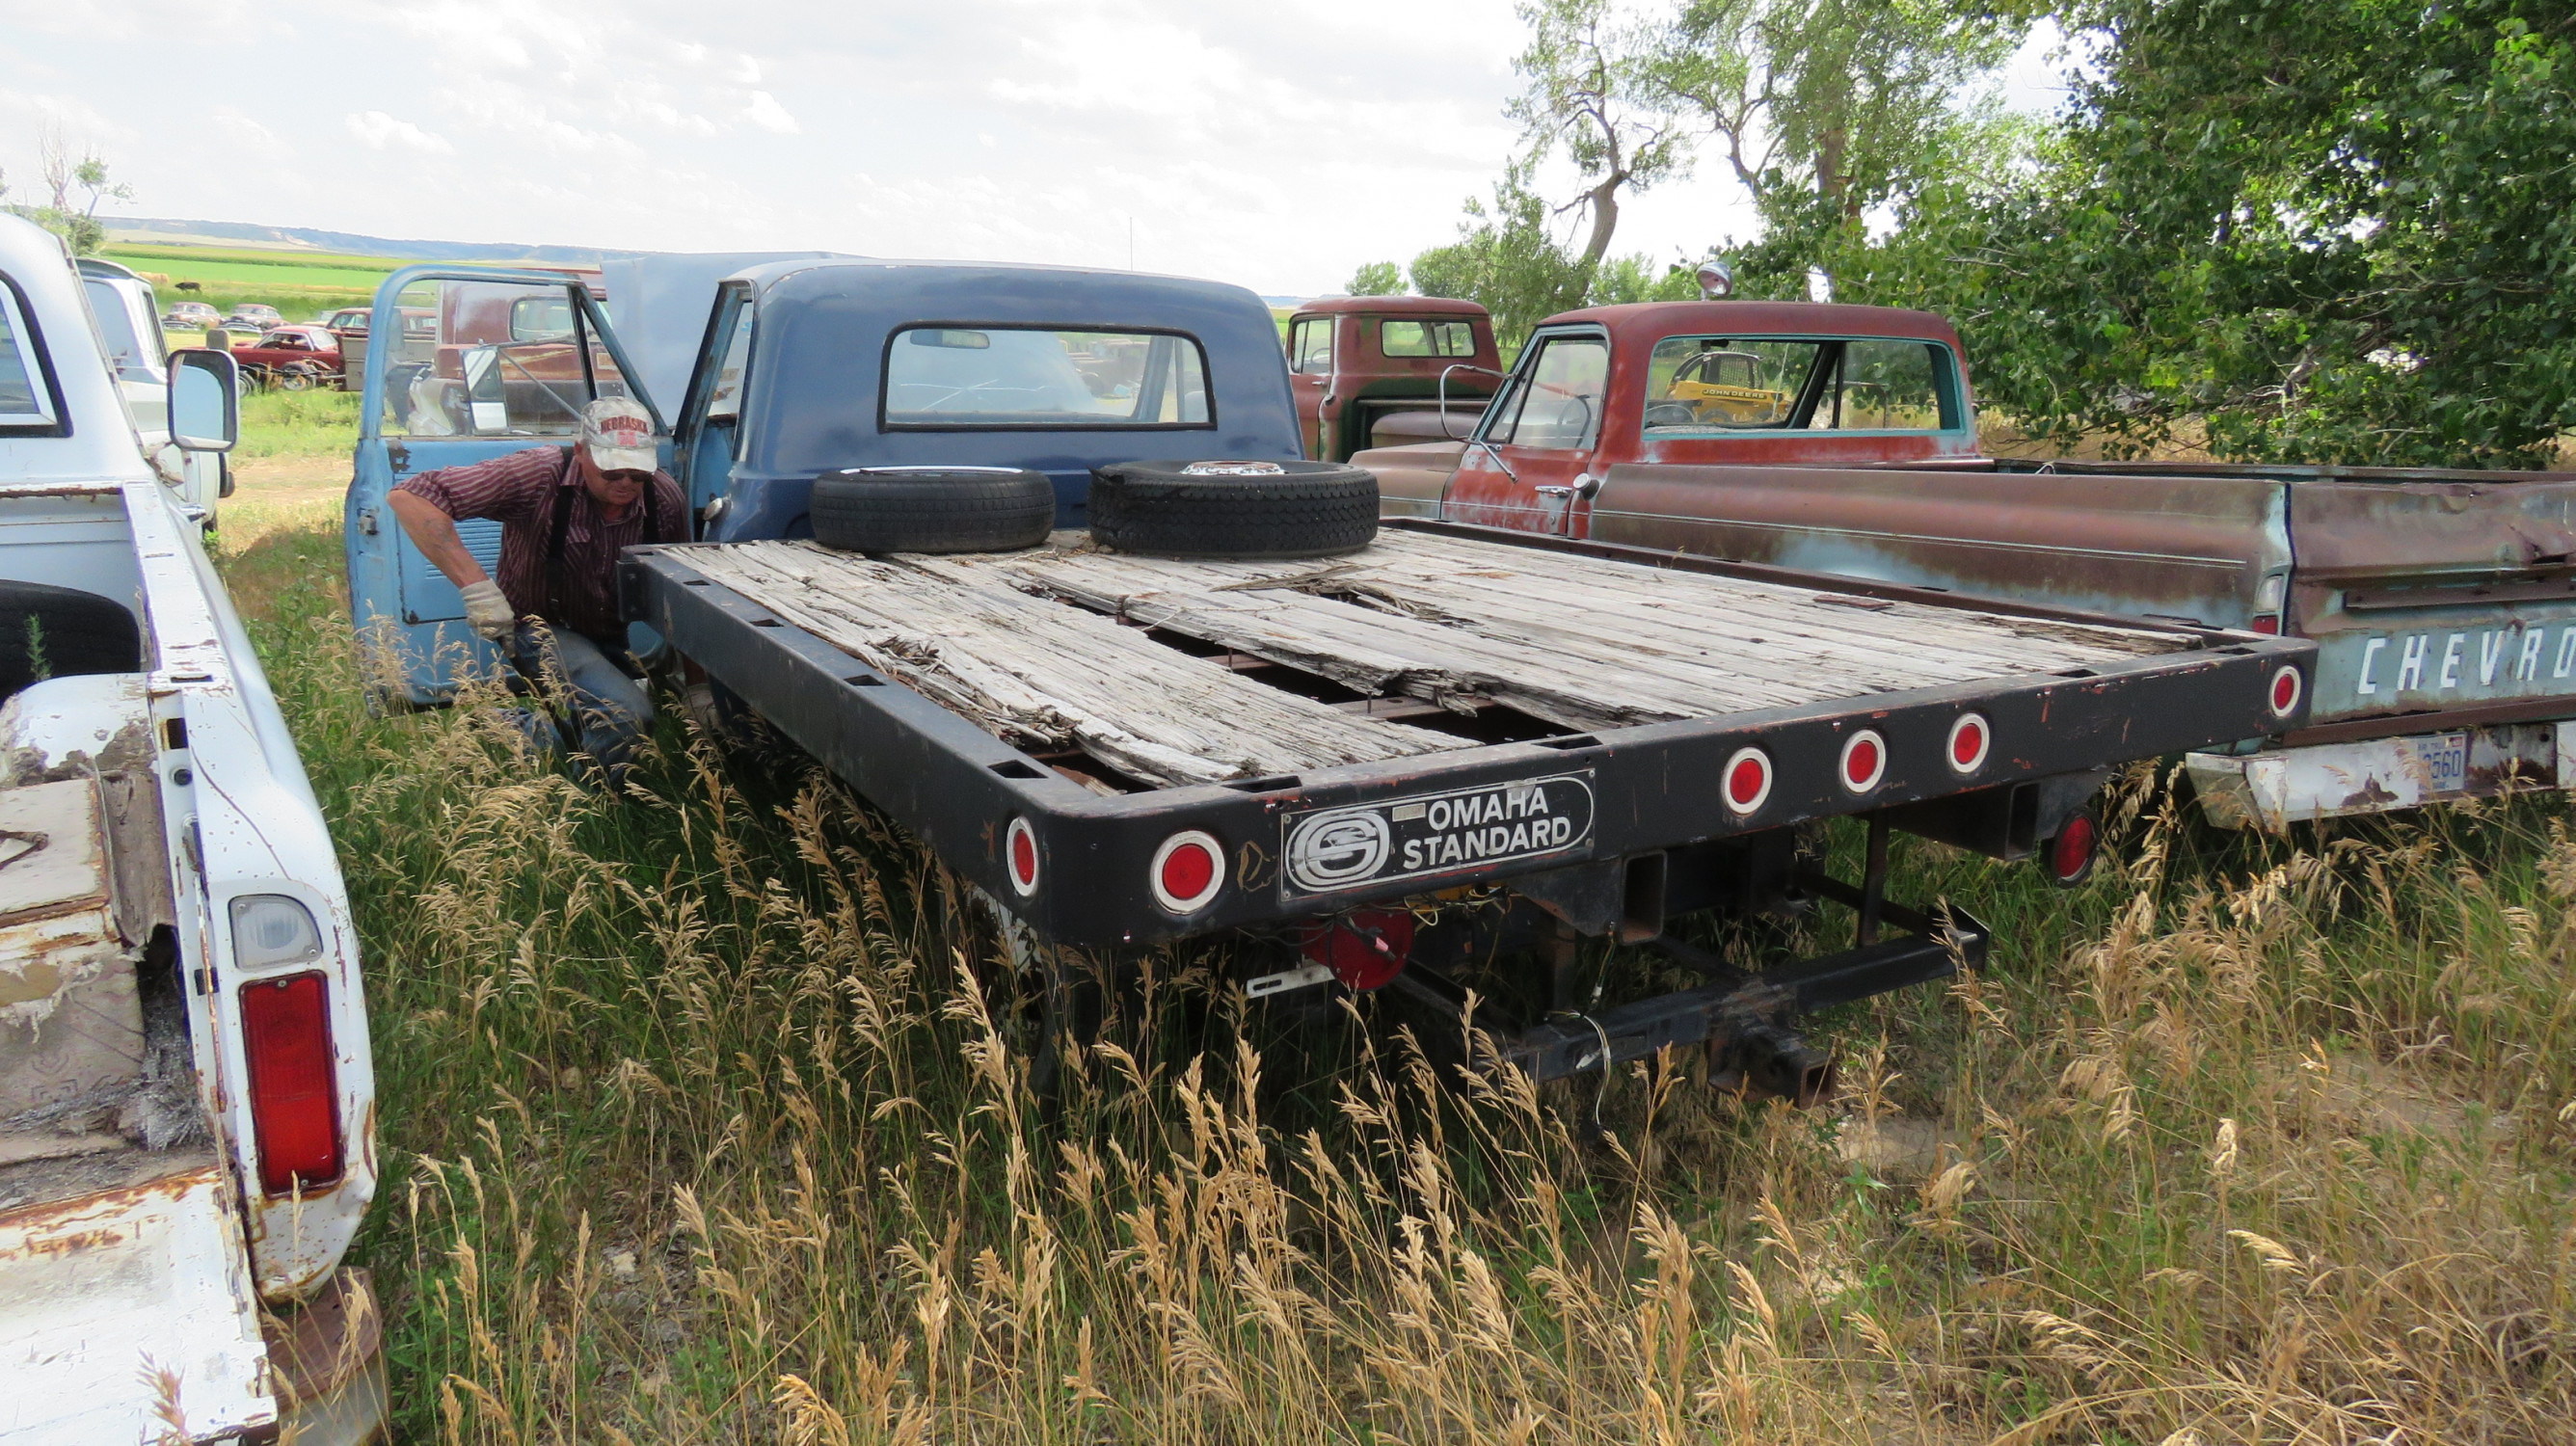 1968 GMC flatbed pickup - Image 3